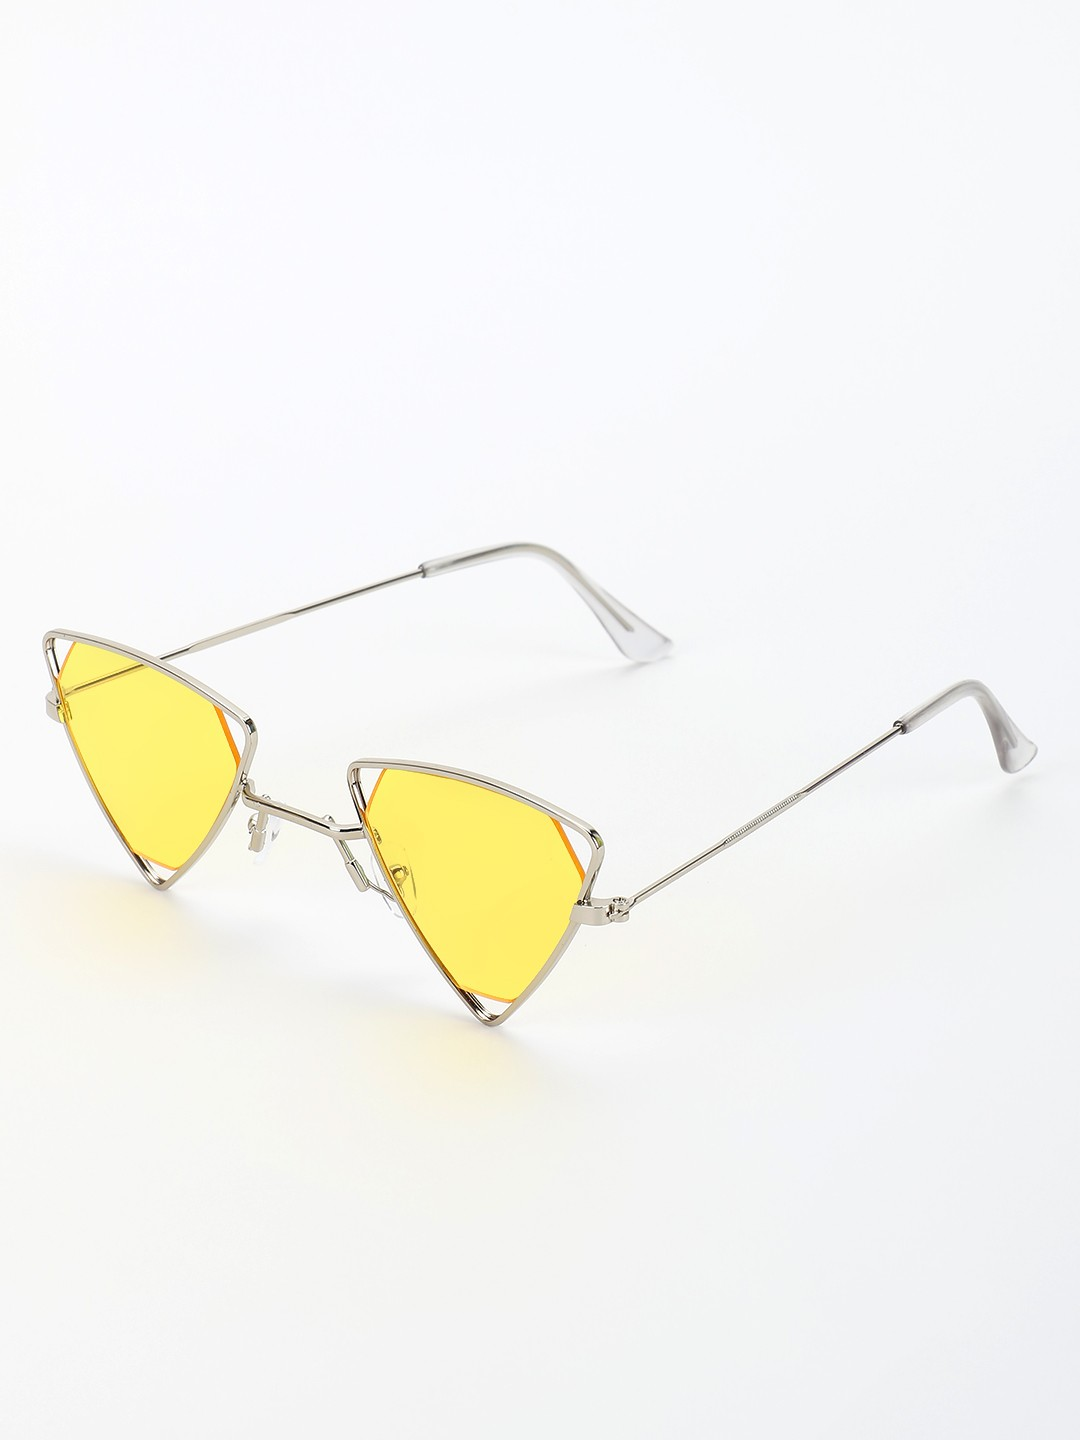 Style Fiesta Yellow Triangular Frame Retro Sunglasses 1